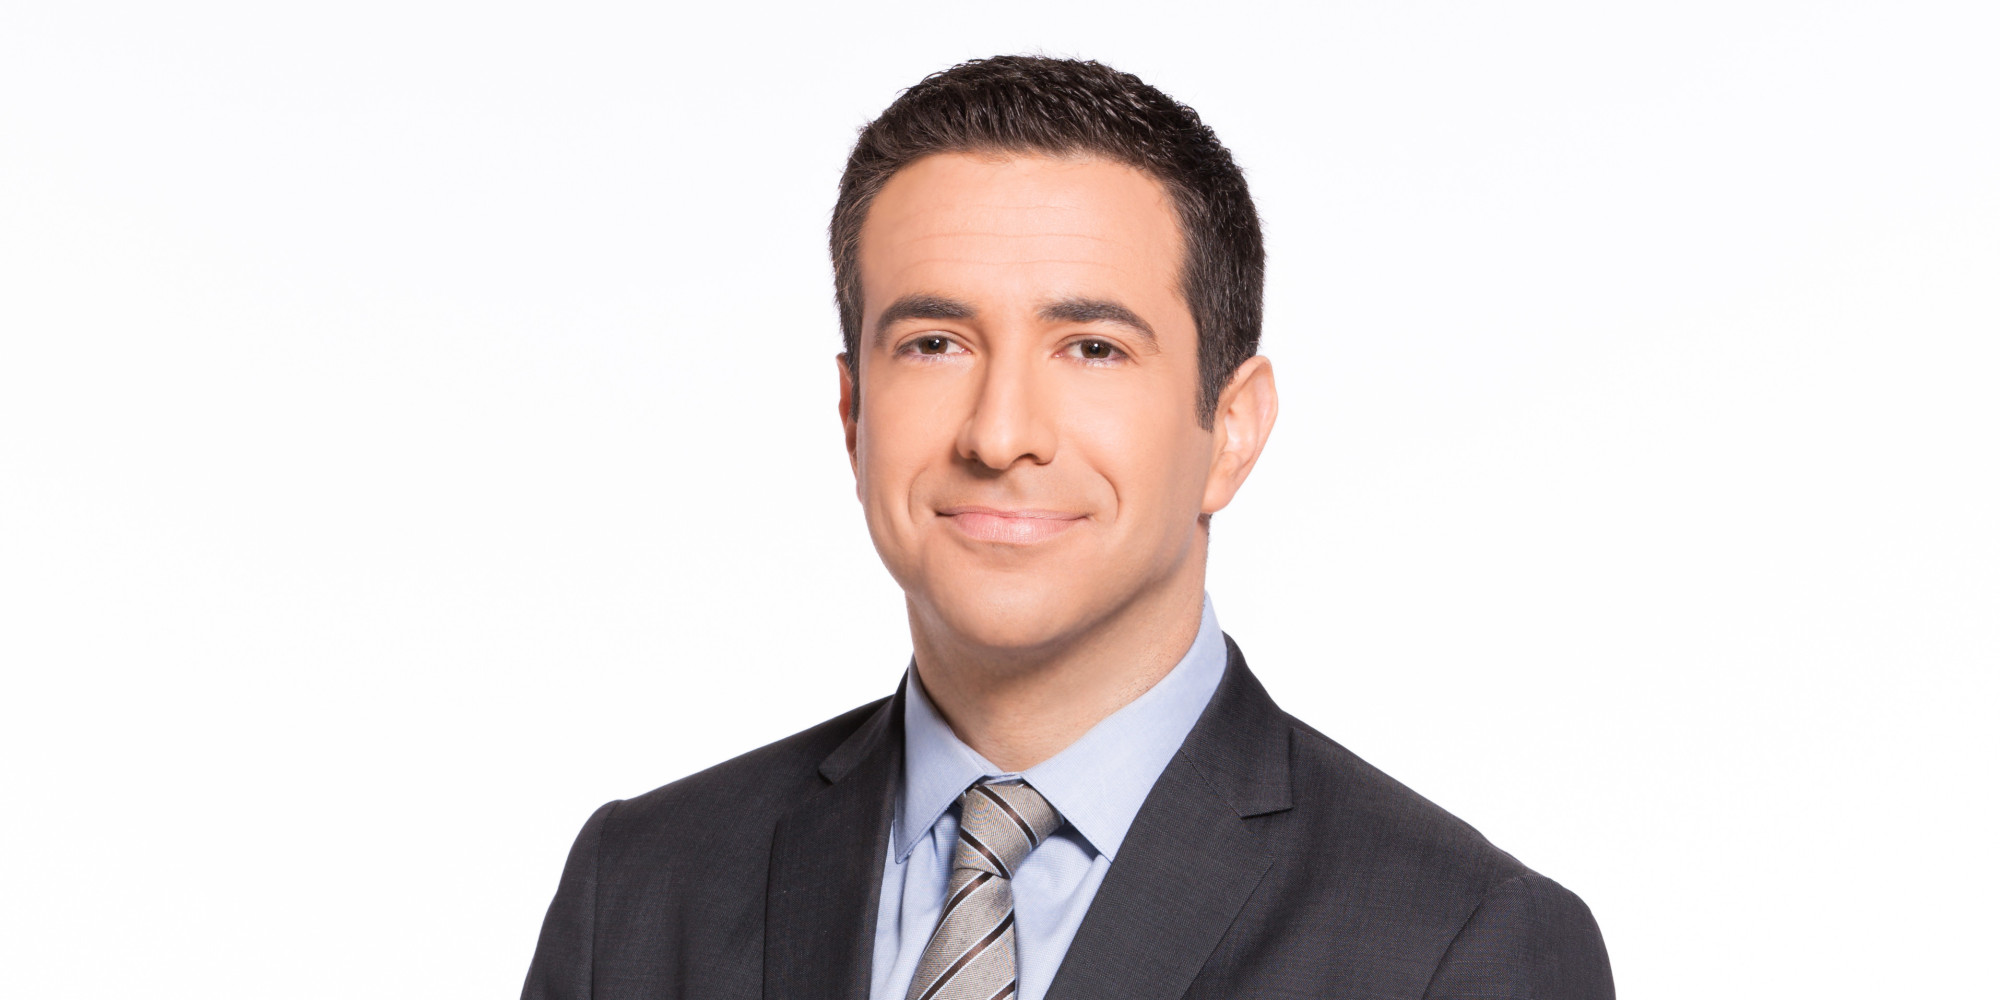 melber personals Nunberg also claimed in an interview with msnbc's ari melber that mueller offered him he had made on a personal facebook page dating back.